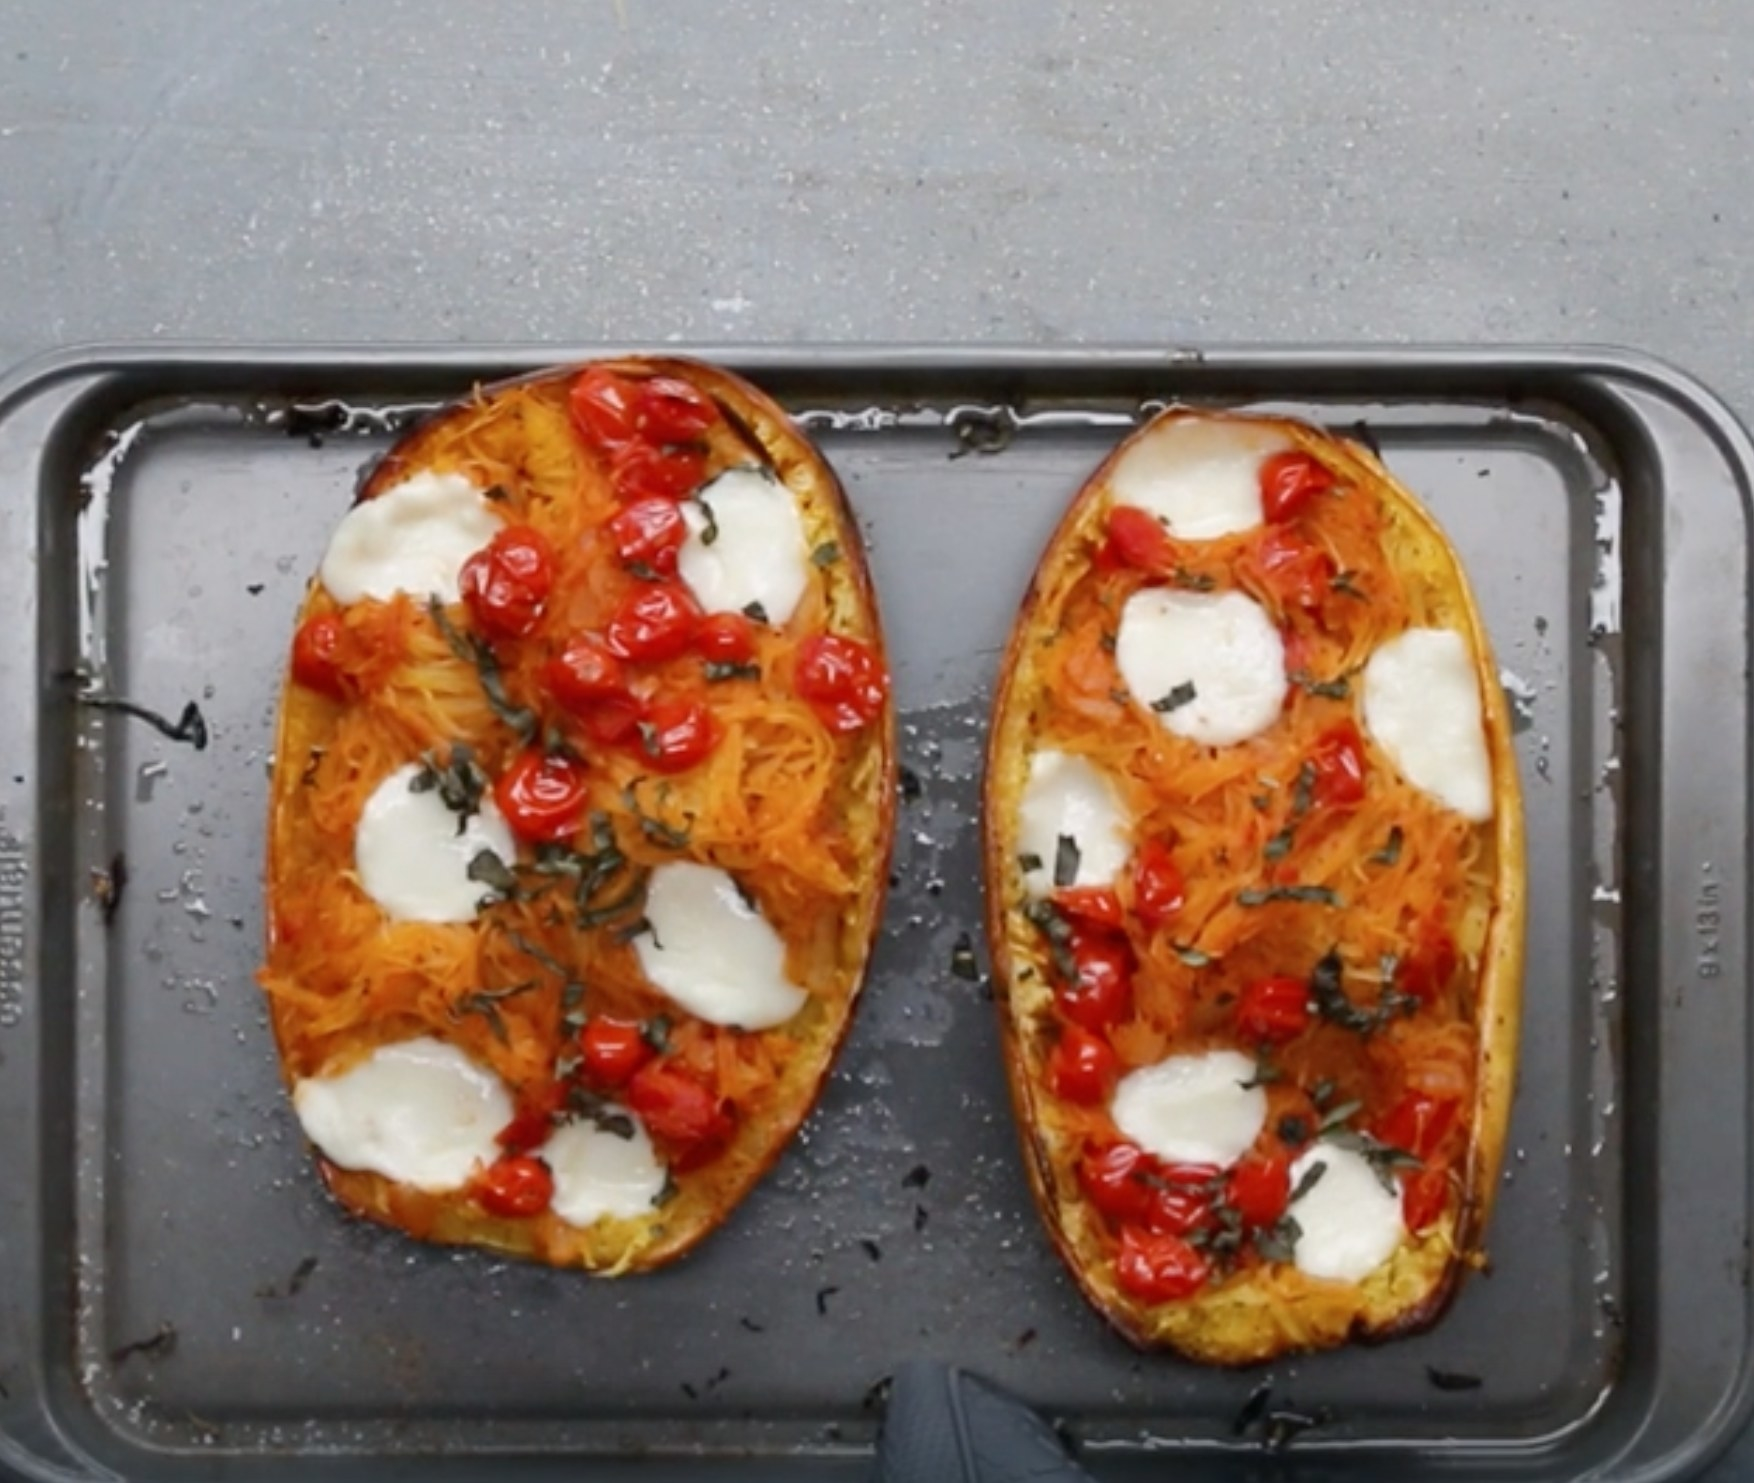 A pan with two roasted spaghetti squashes topped with tomatoes and mozzarella